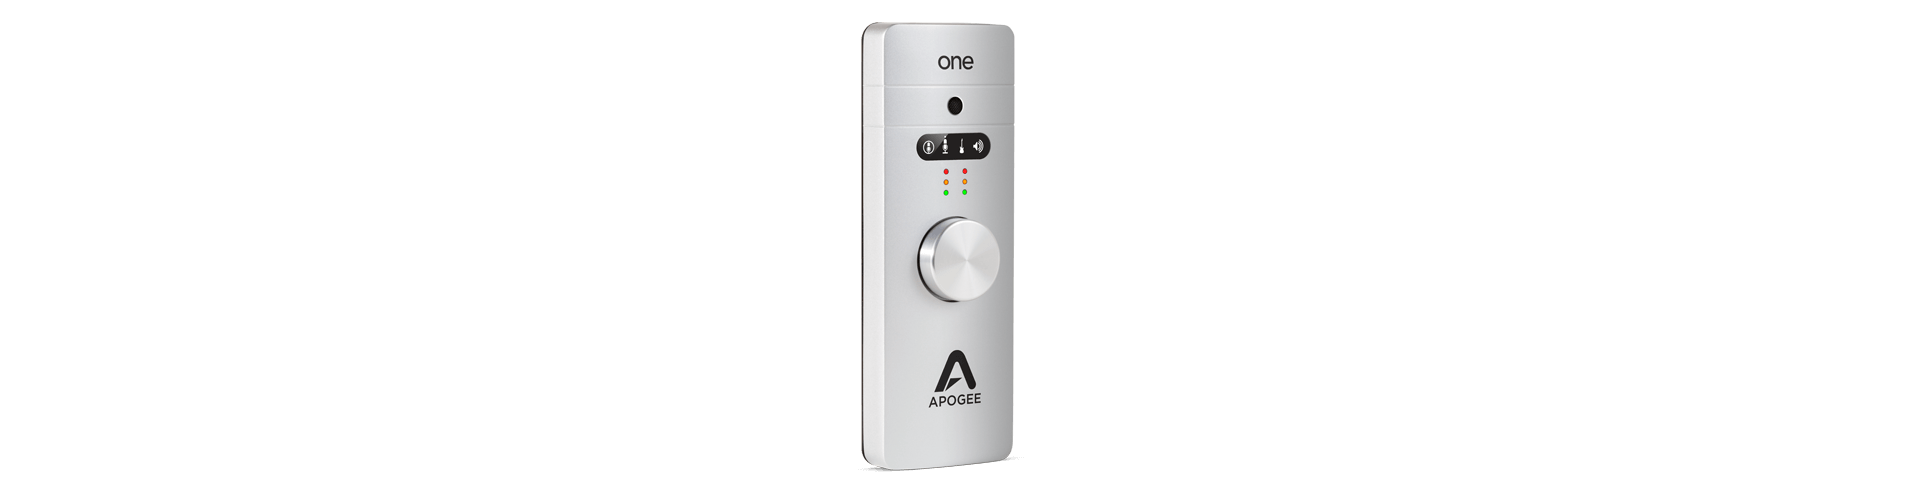 Apogee-One-for-mac